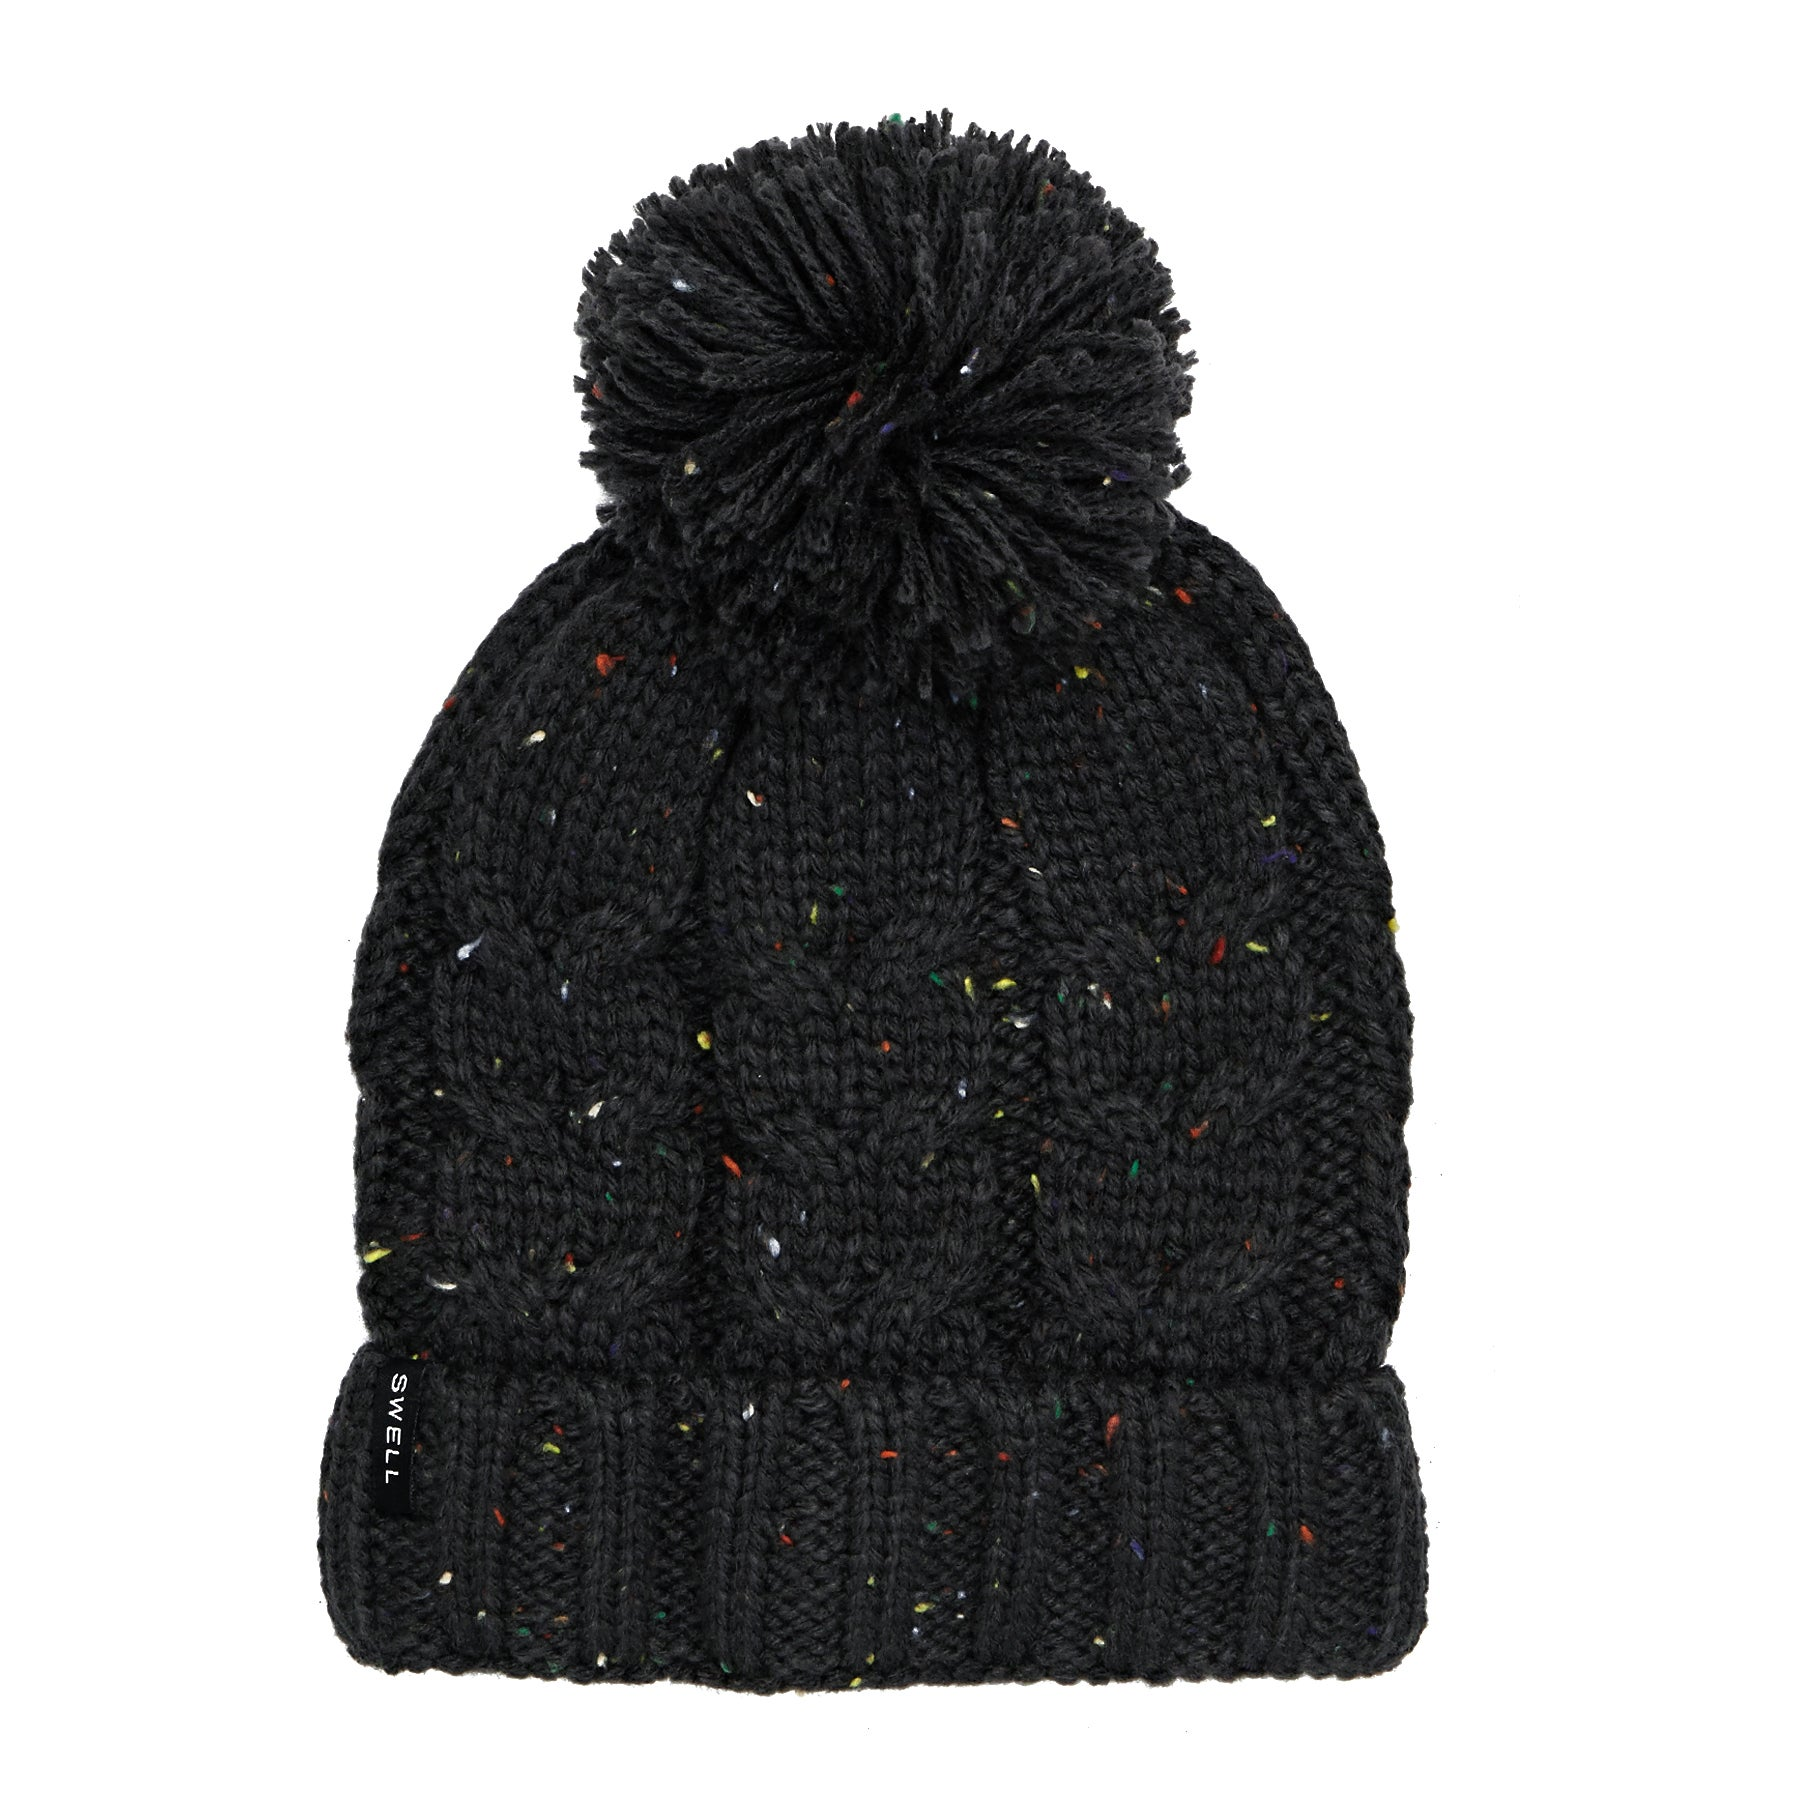 SWELL Cuffed Cable Knit Pom Beanie - Char Marle